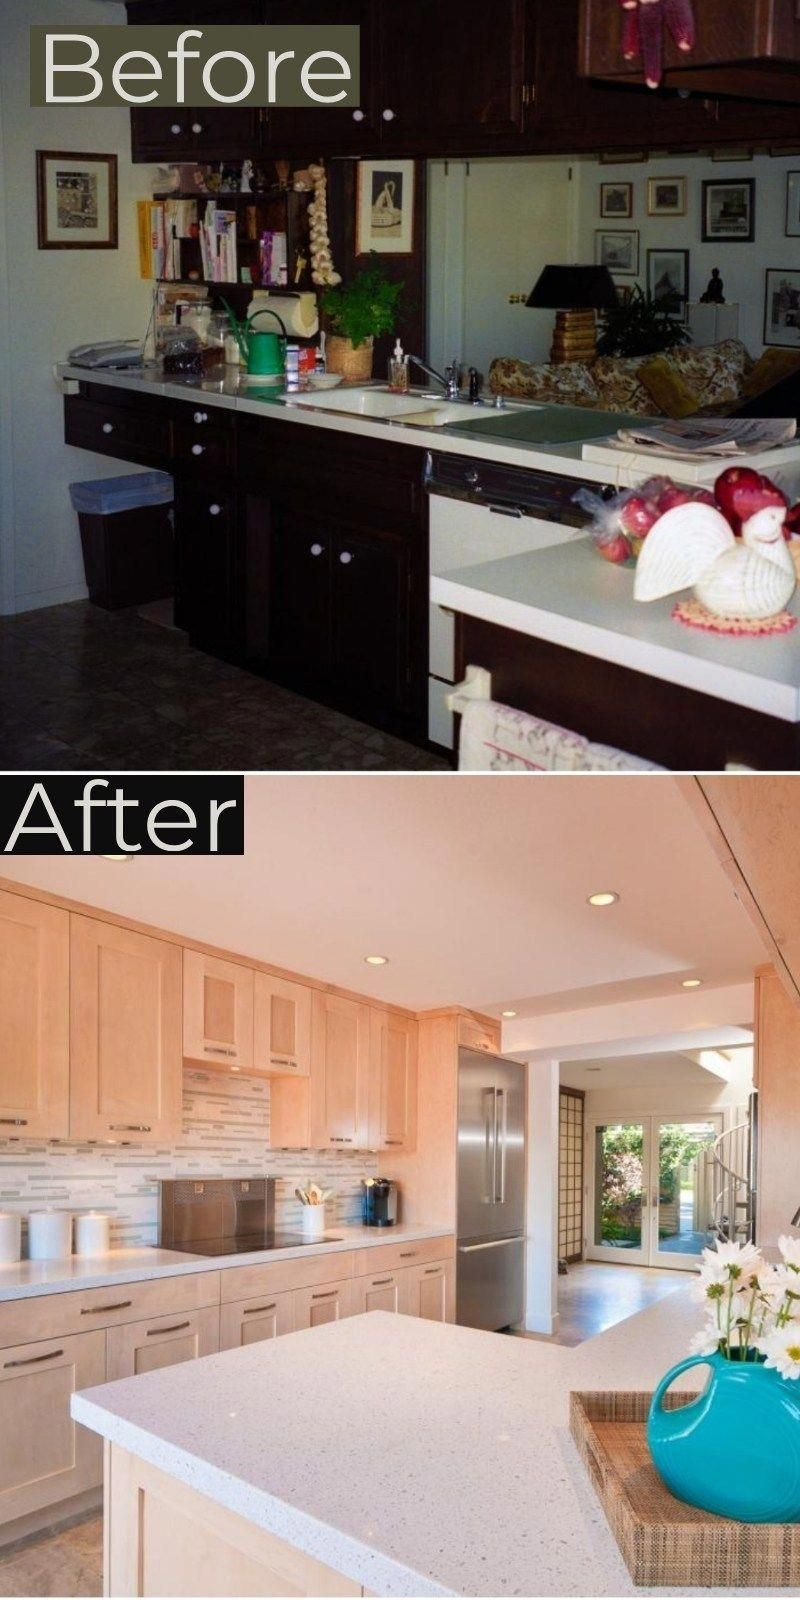 Galley Kitchen Remodel Before And After Ideas 2019 Trends #onabudget #small #beforeandafter #fixerupper #ideas #narrow #layout #joannagaines #open #island #homeremodelingbeforeandafter #opengalleykitchen Galley Kitchen Remodel Before And After Ideas 2019 Trends #onabudget #small #beforeandafter #fixerupper #ideas #narrow #layout #joannagaines #open #island #homeremodelingbeforeandafter #opengalleykitchen